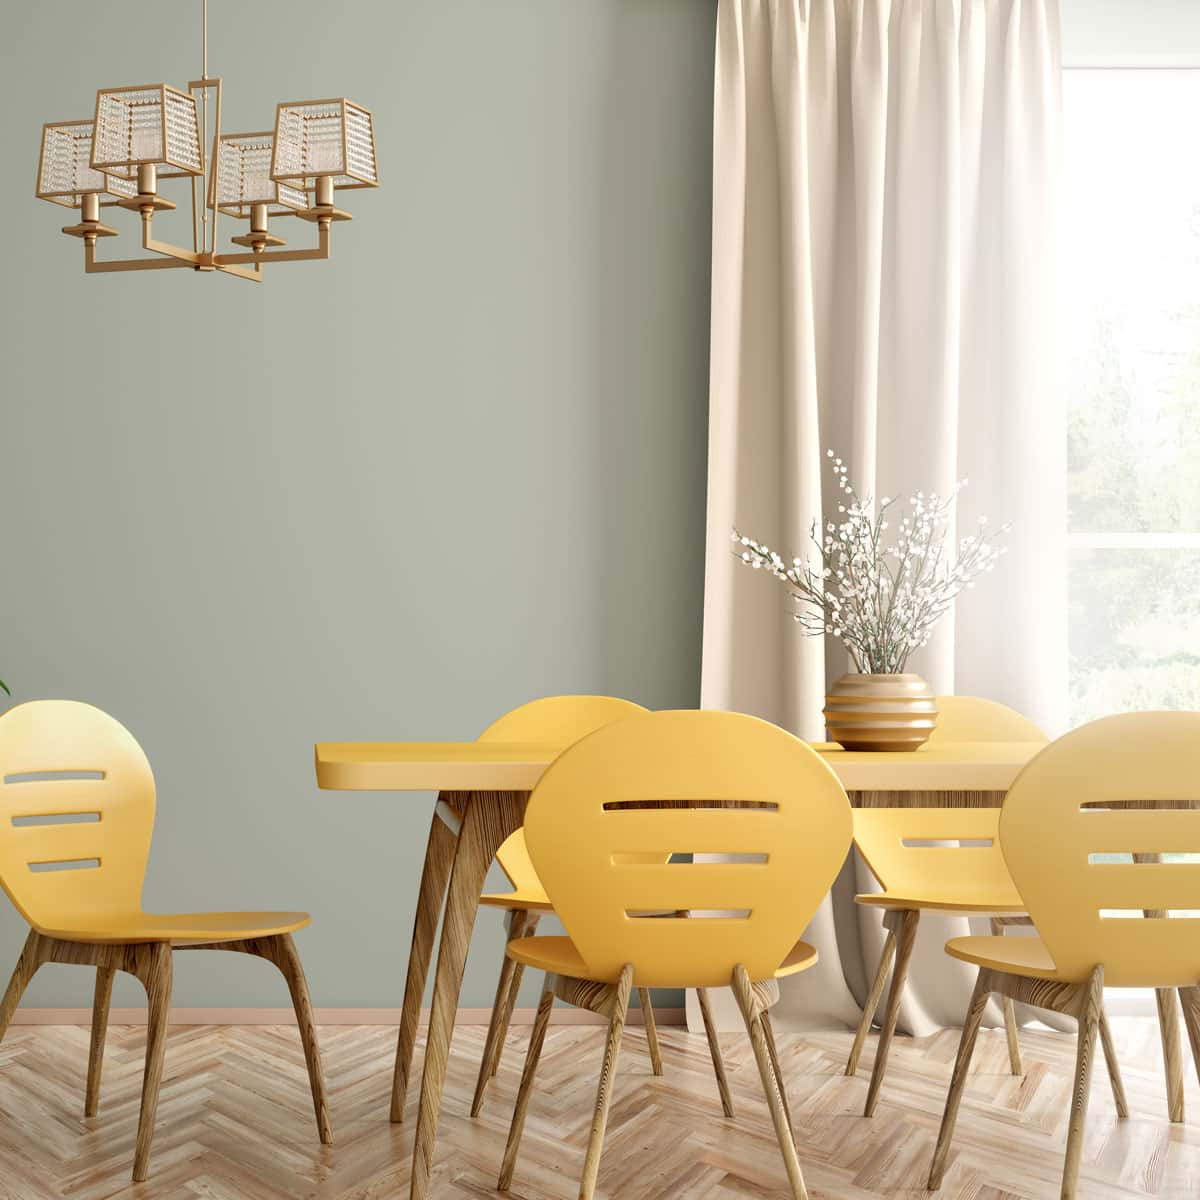 Yellow 50s style dining table and chairs in vintage style home